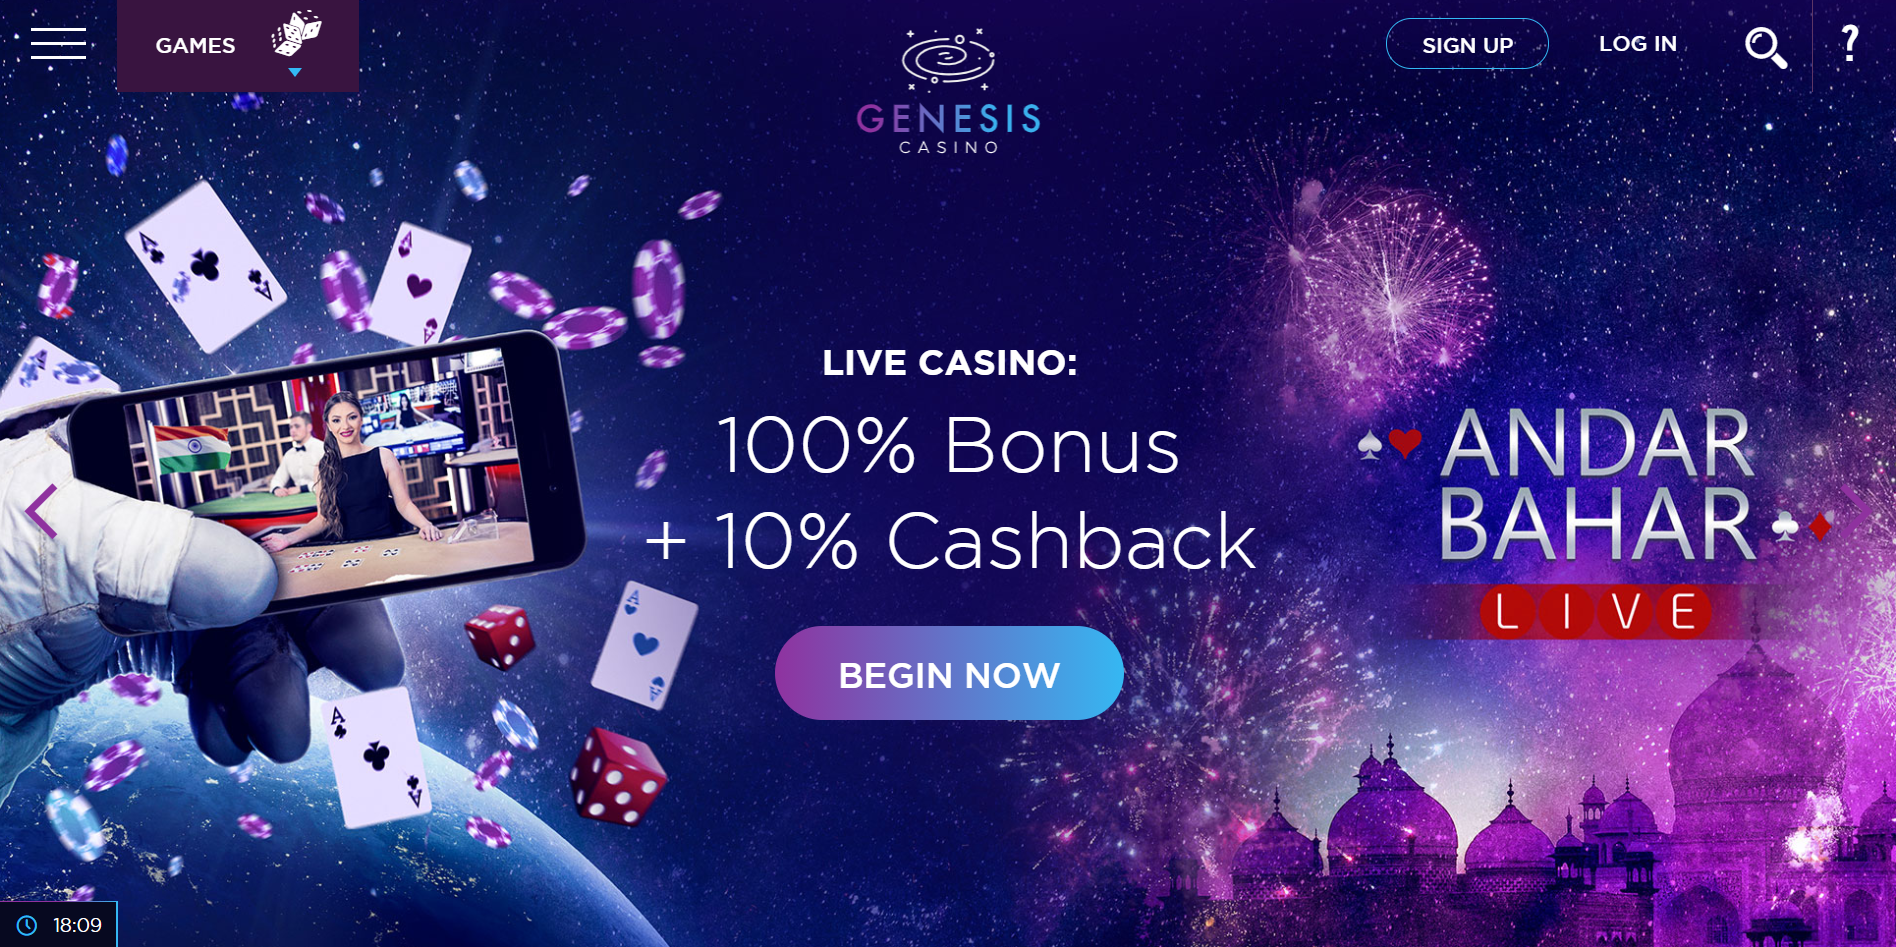 Get started with Genesis Casino India